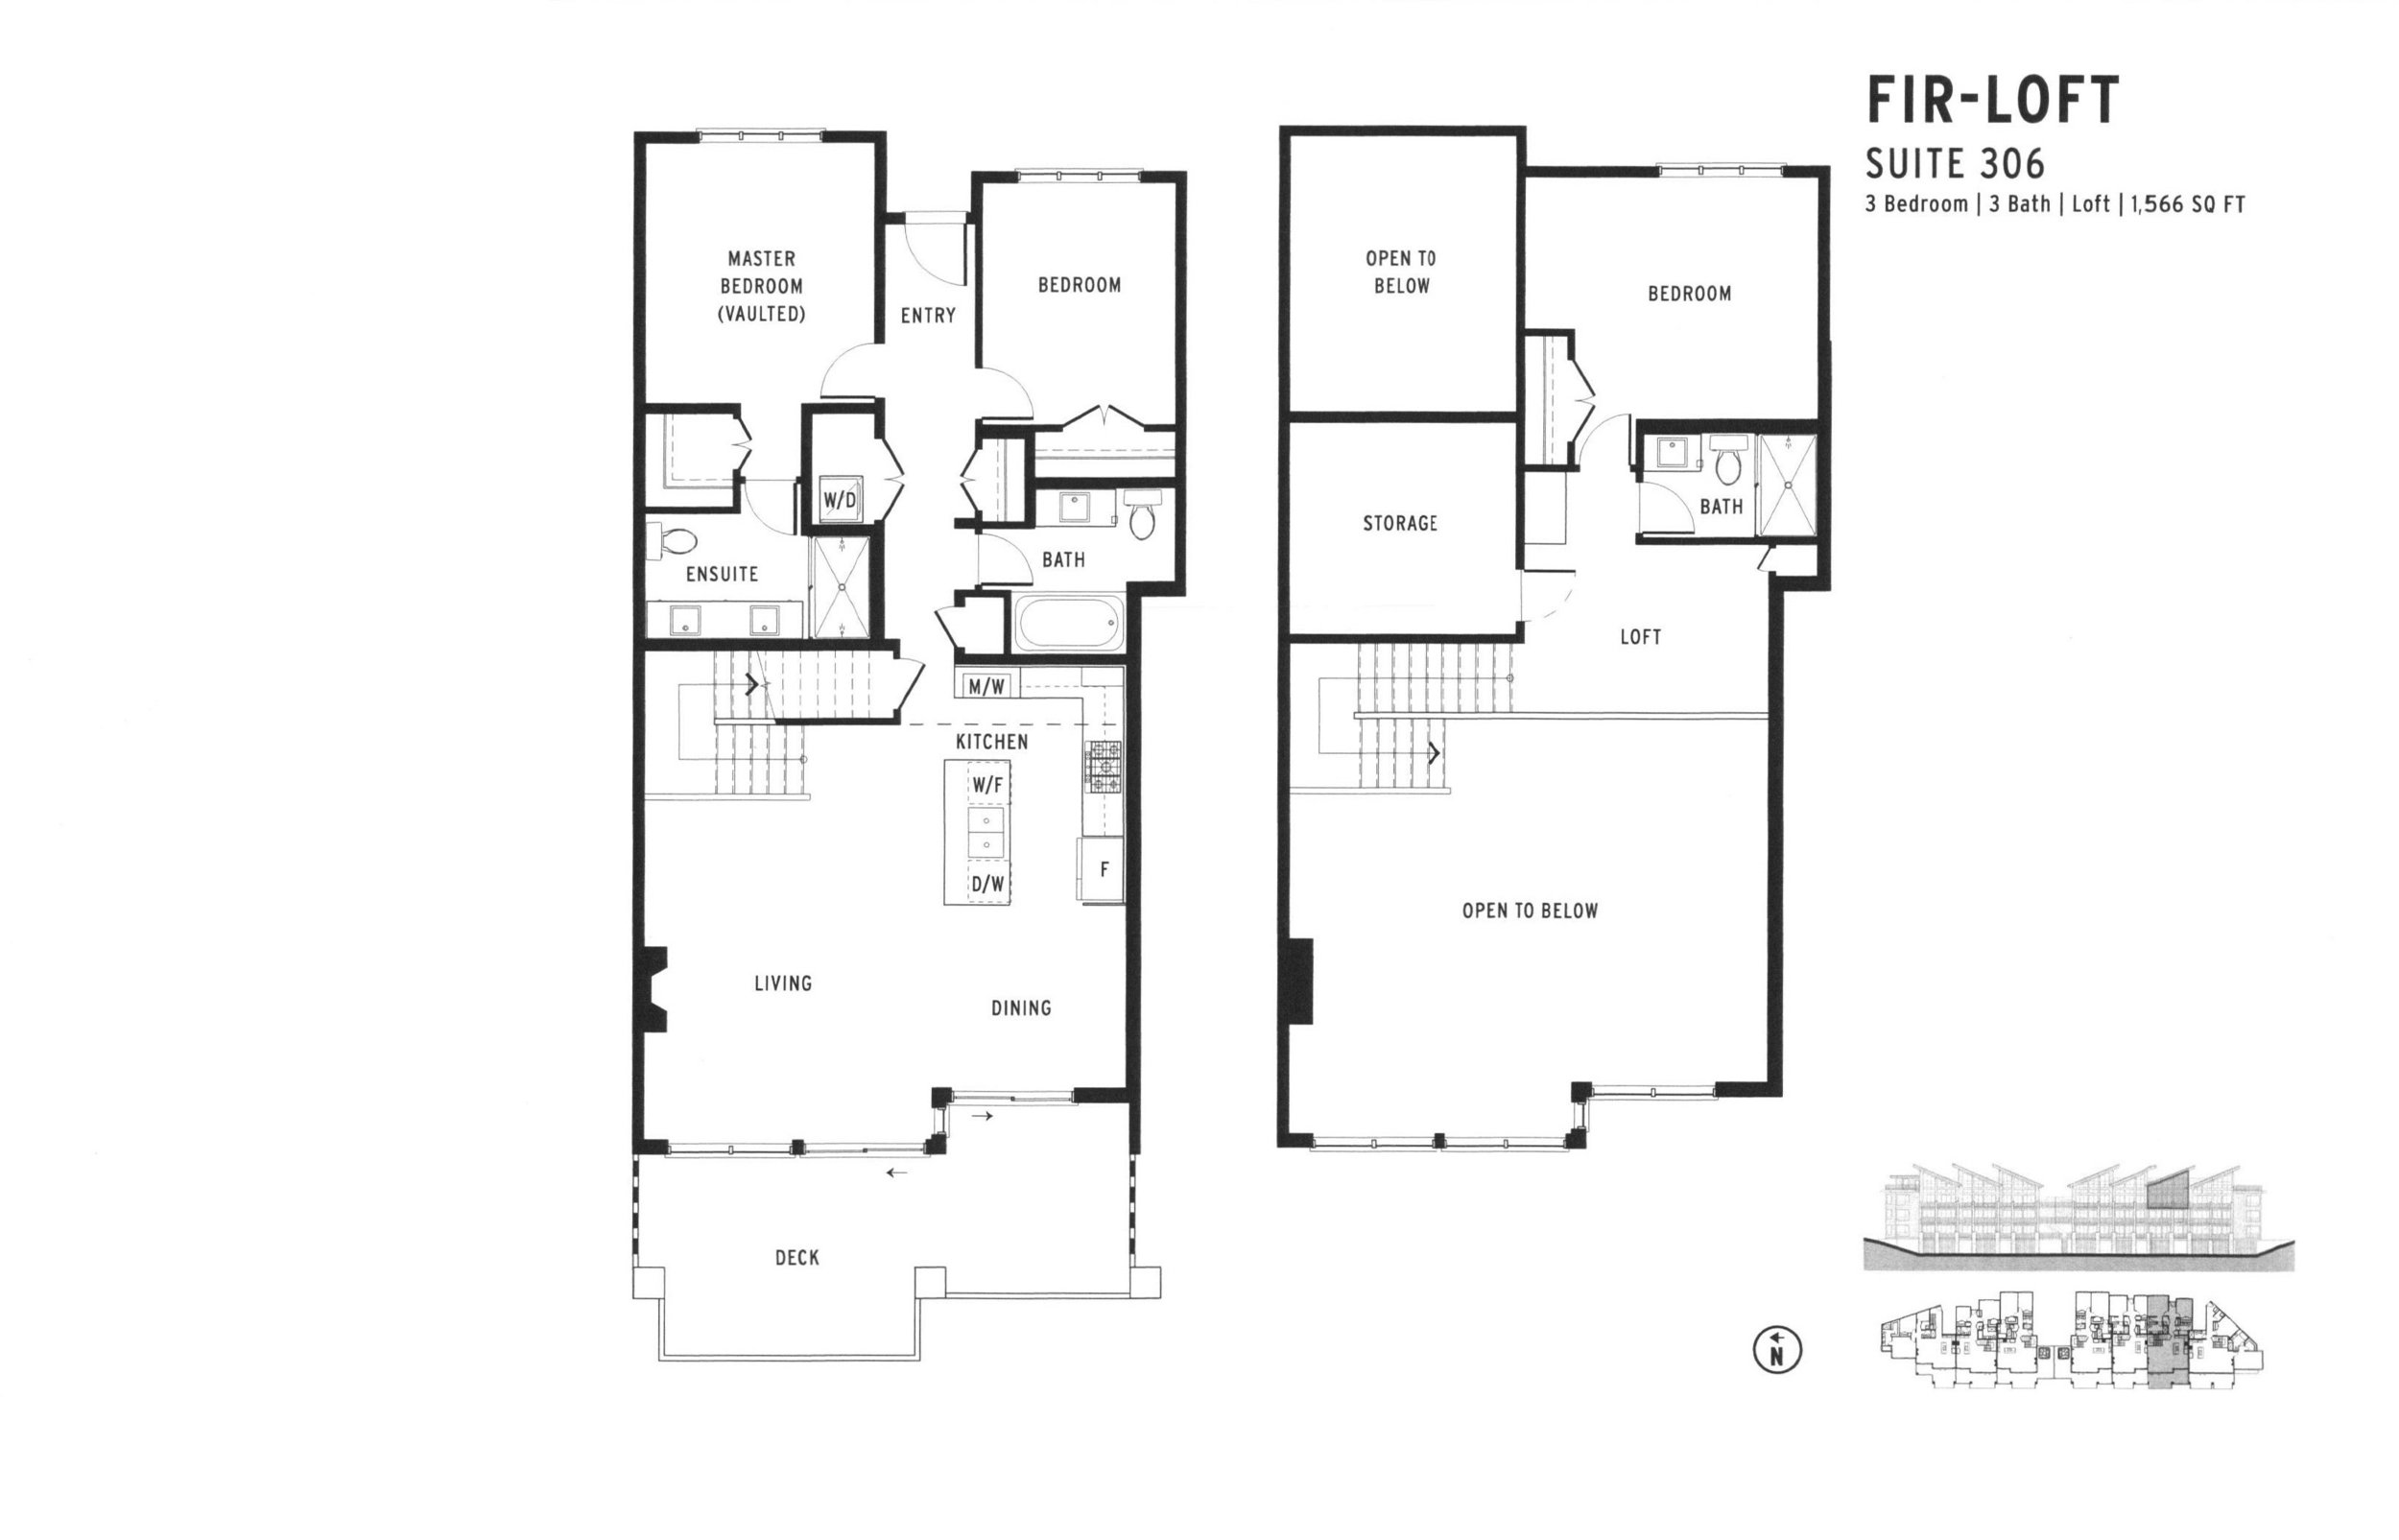 Copy of 306 - FIR-LOFT - $ 1,599,900